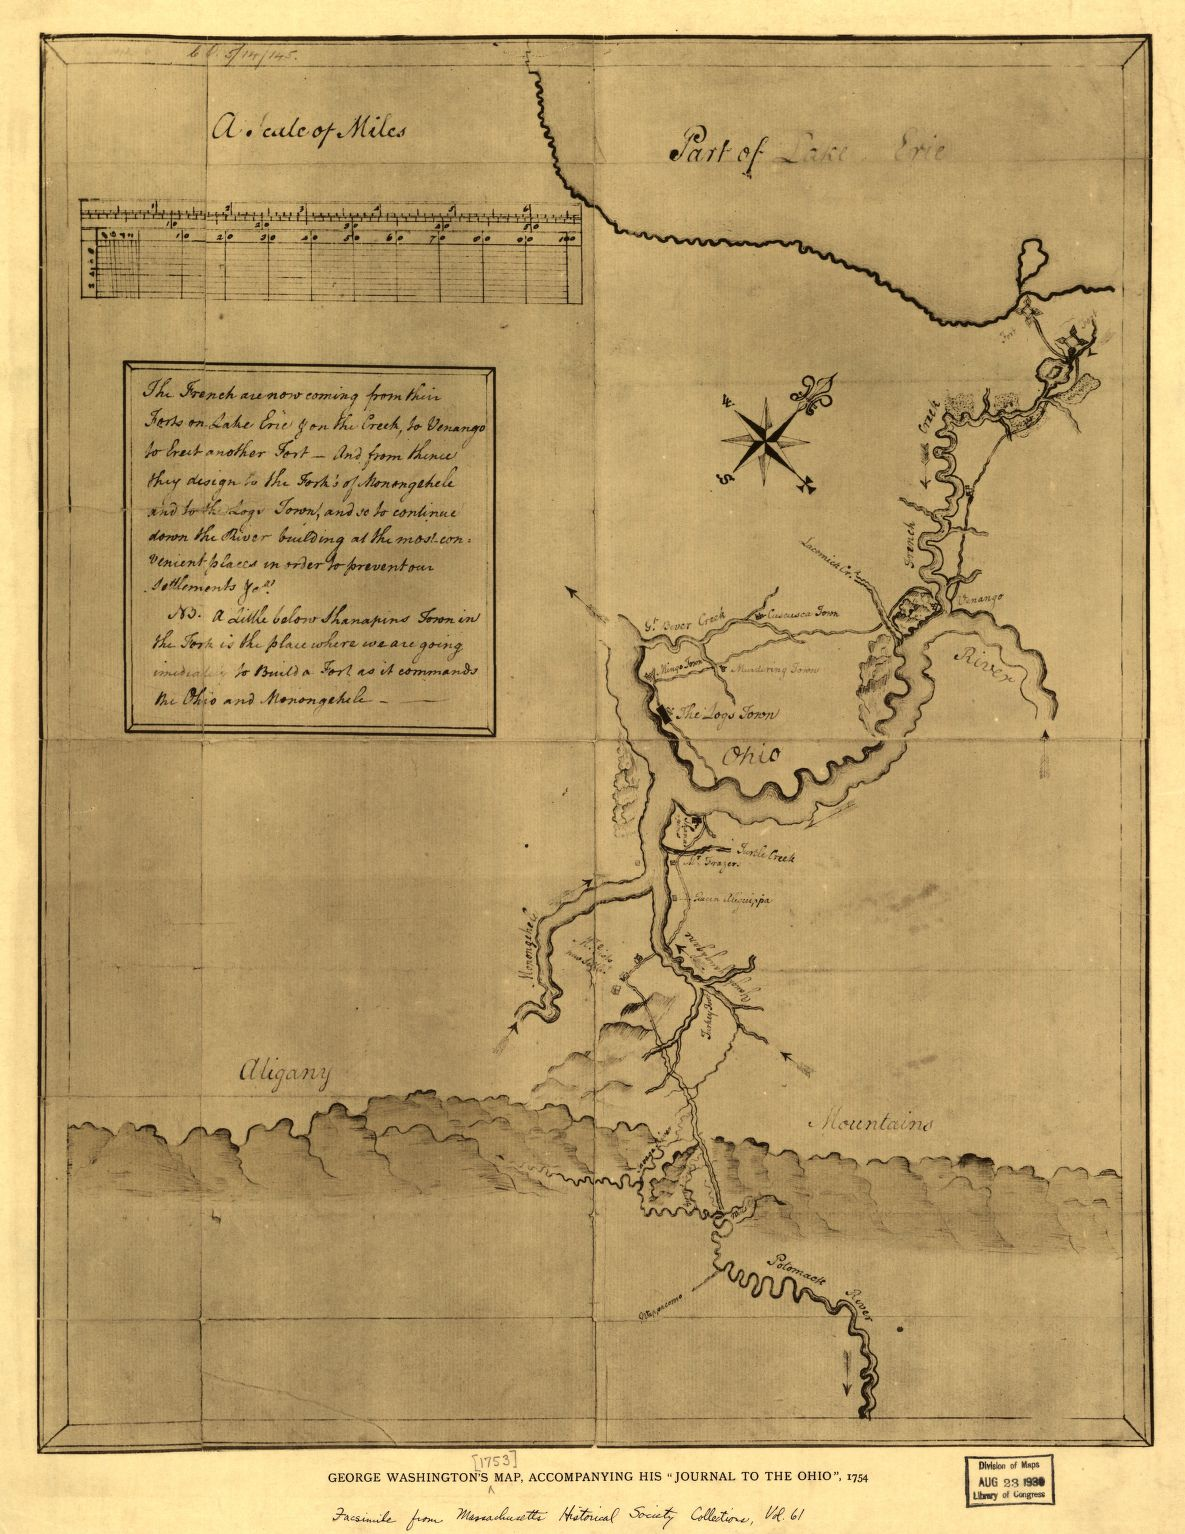 A map of the Ohio River Valley, drawn by Washington, with notes about the French presence, 1754. Library of Congress call number G3820 1754 .W3 1927 TIL.